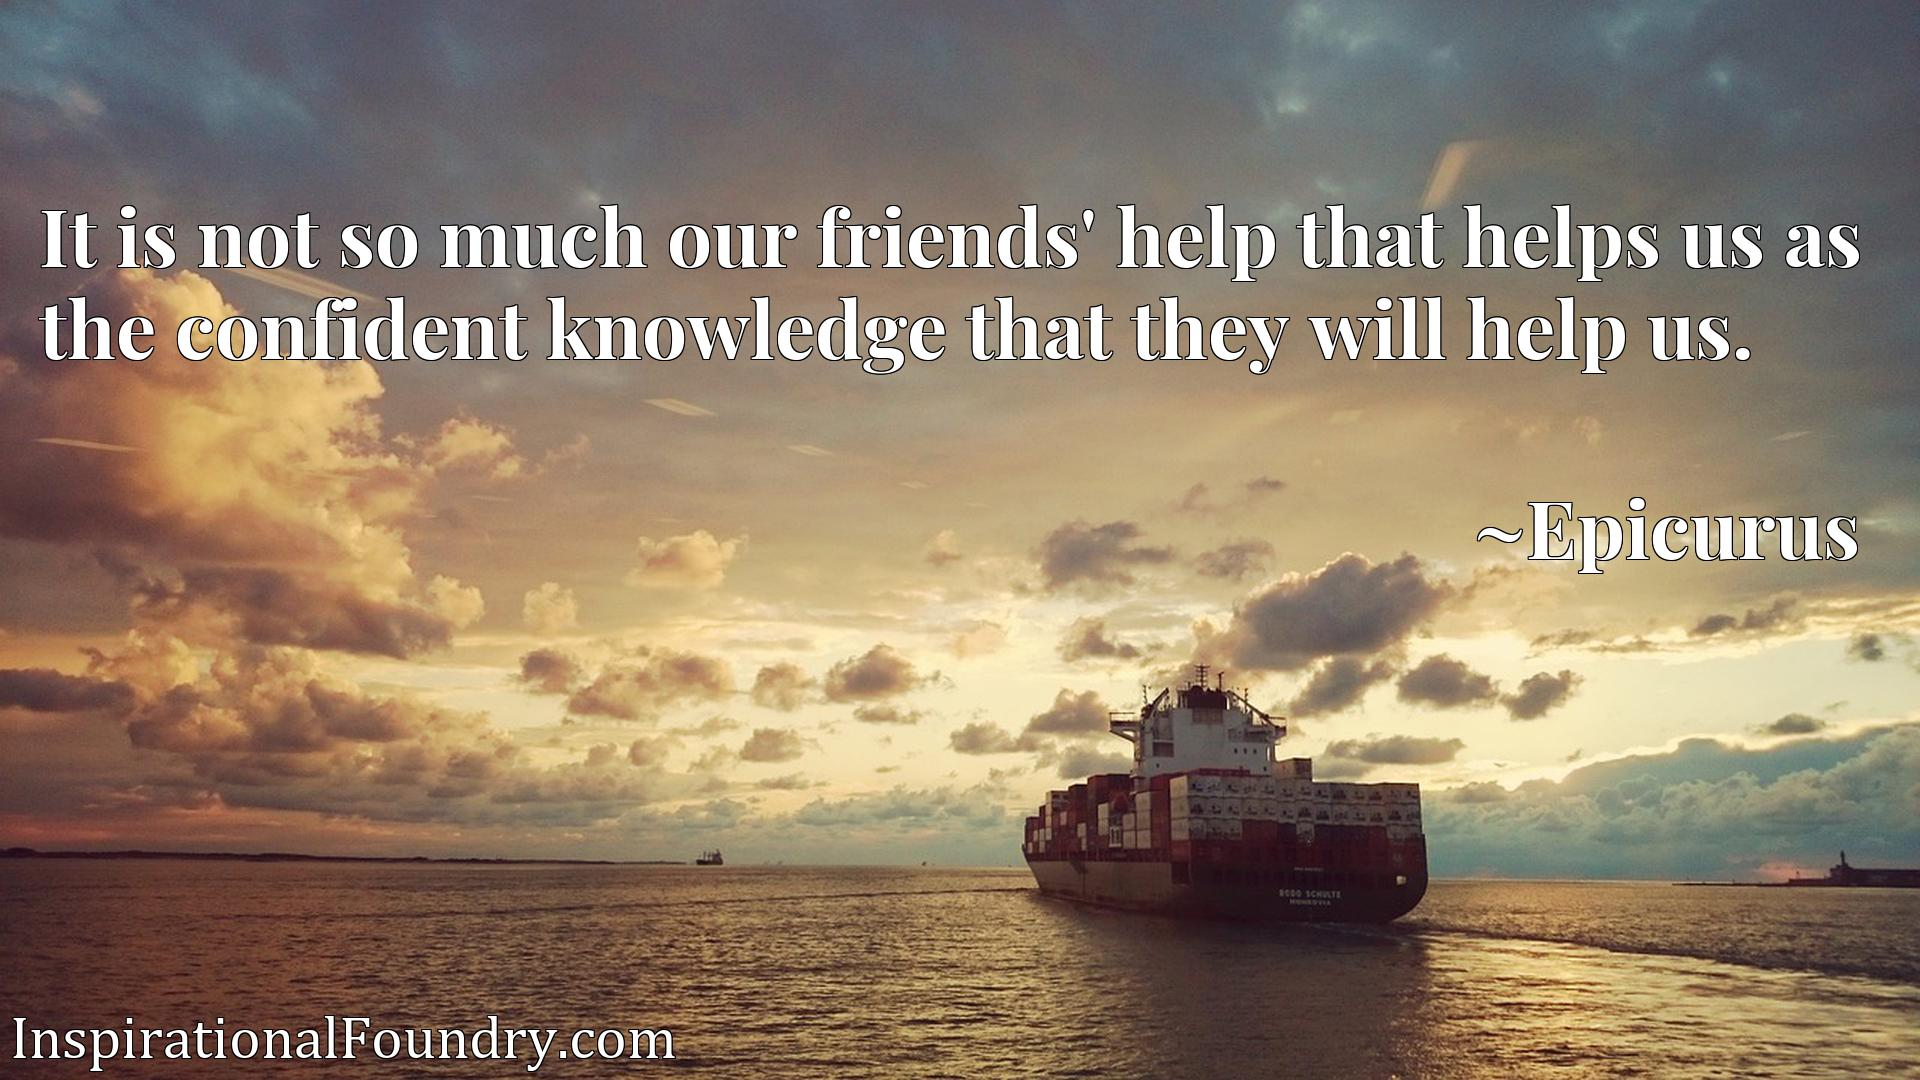 It is not so much our friends' help that helps us as the confident knowledge that they will help us.